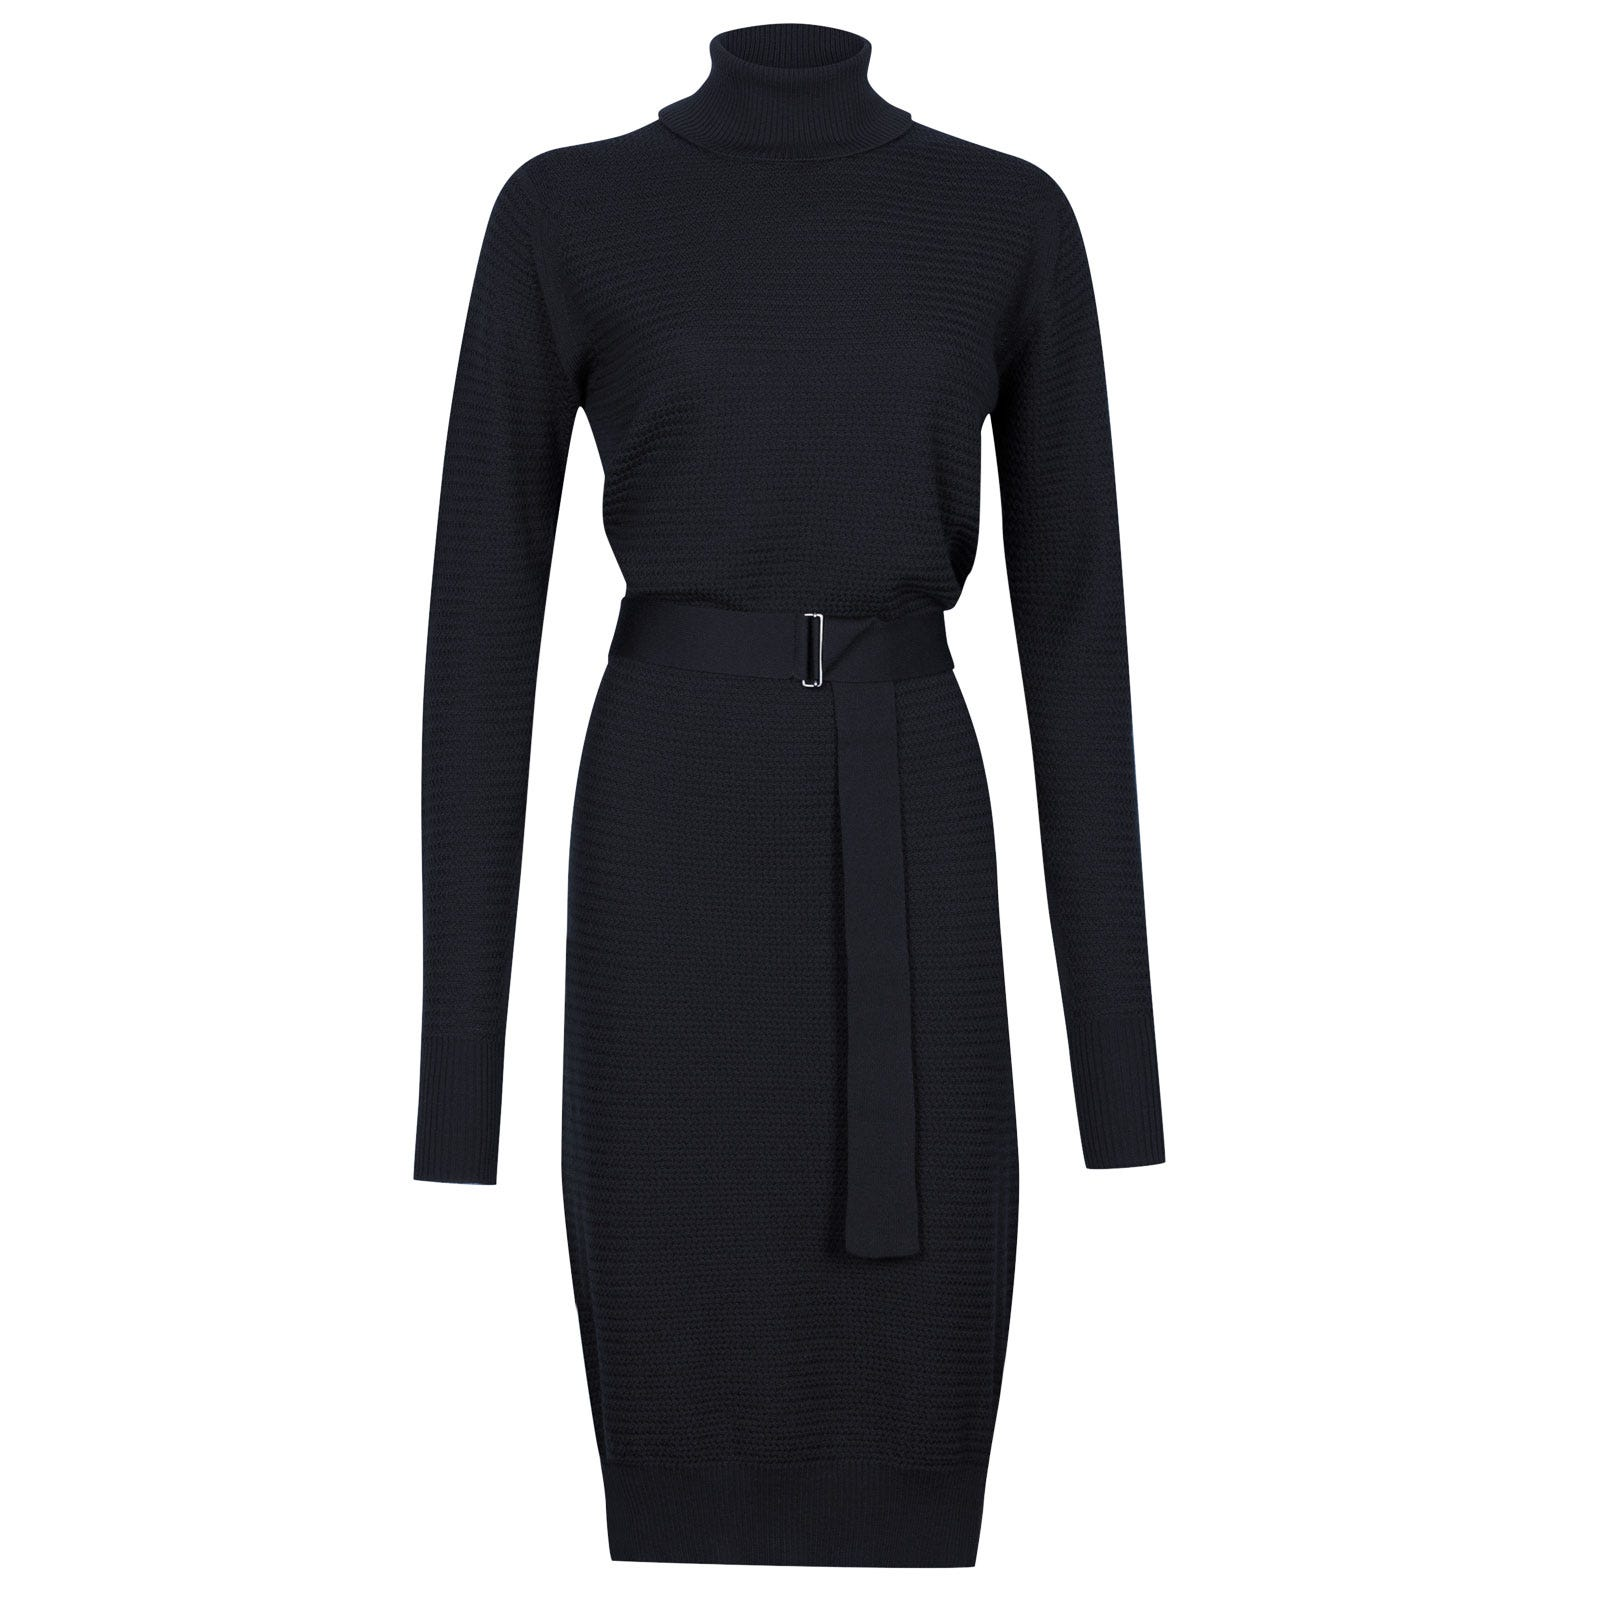 John Smedley Poplar Merino Wool Dress in Midnight-L